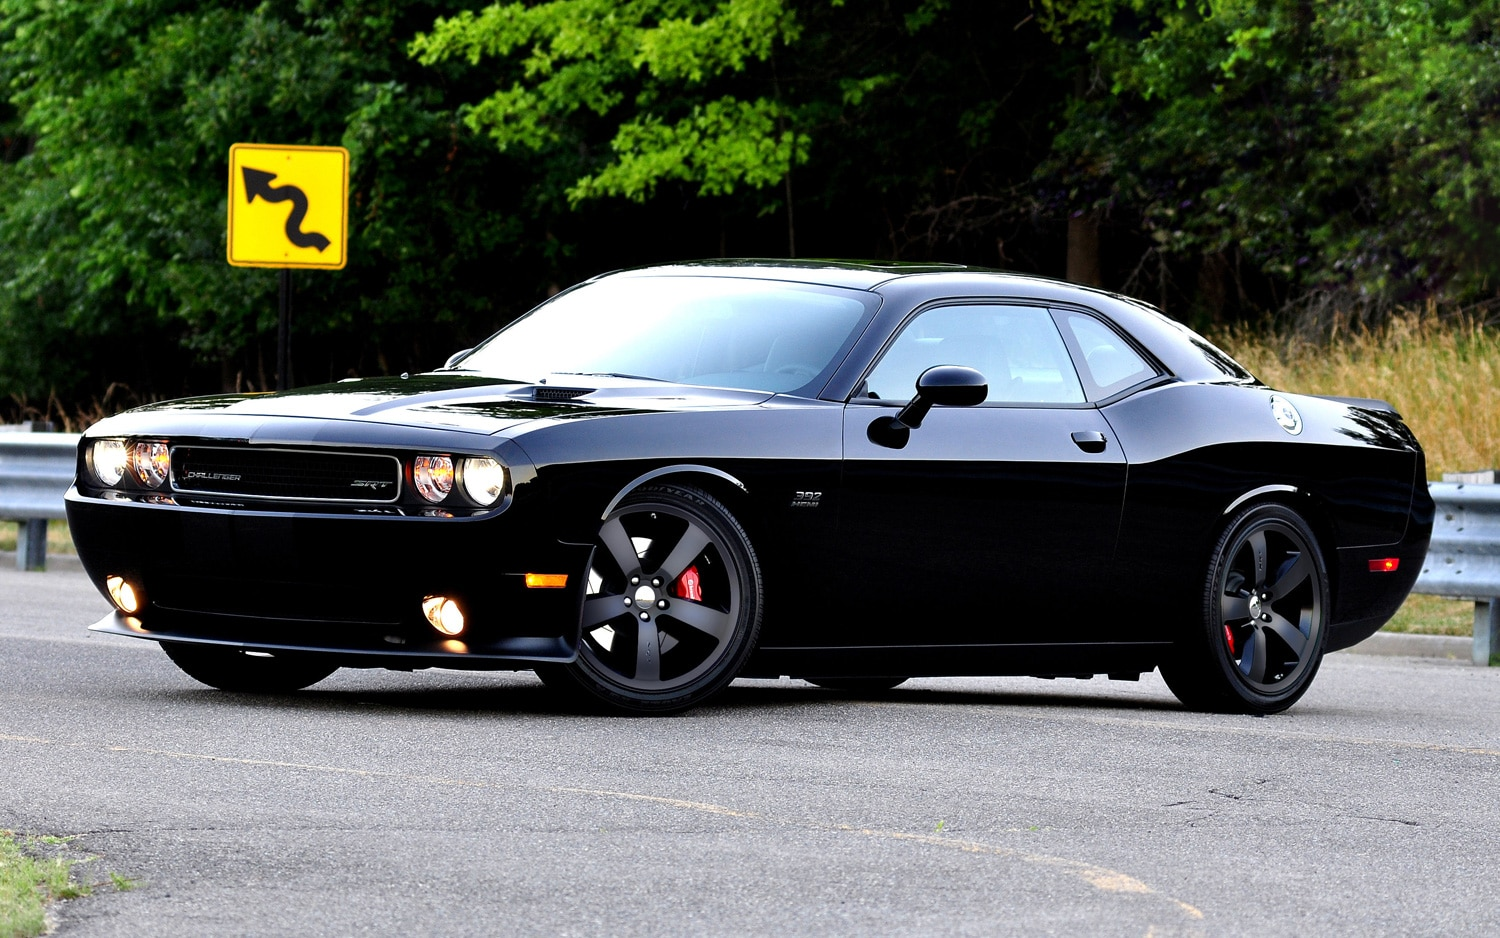 2011 Dodge Challenger SRT8 392 Marchionne Edition Front Three Quarters View1